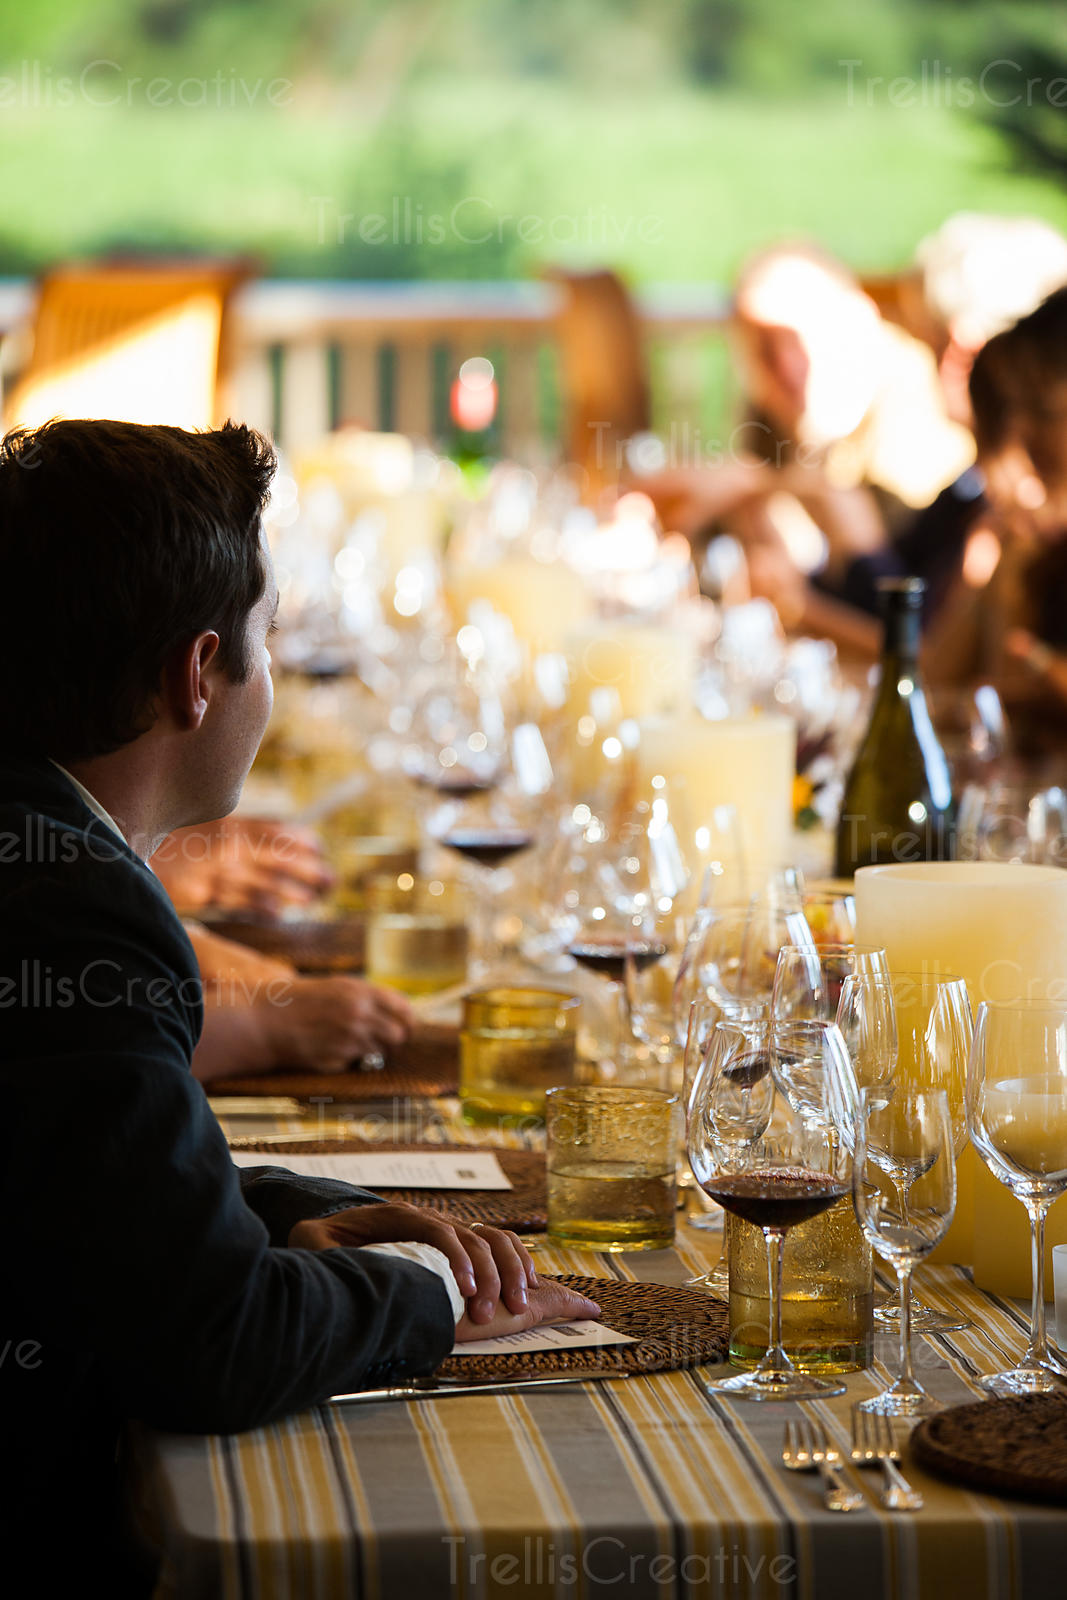 People drinking wine at an outdoor dinner party